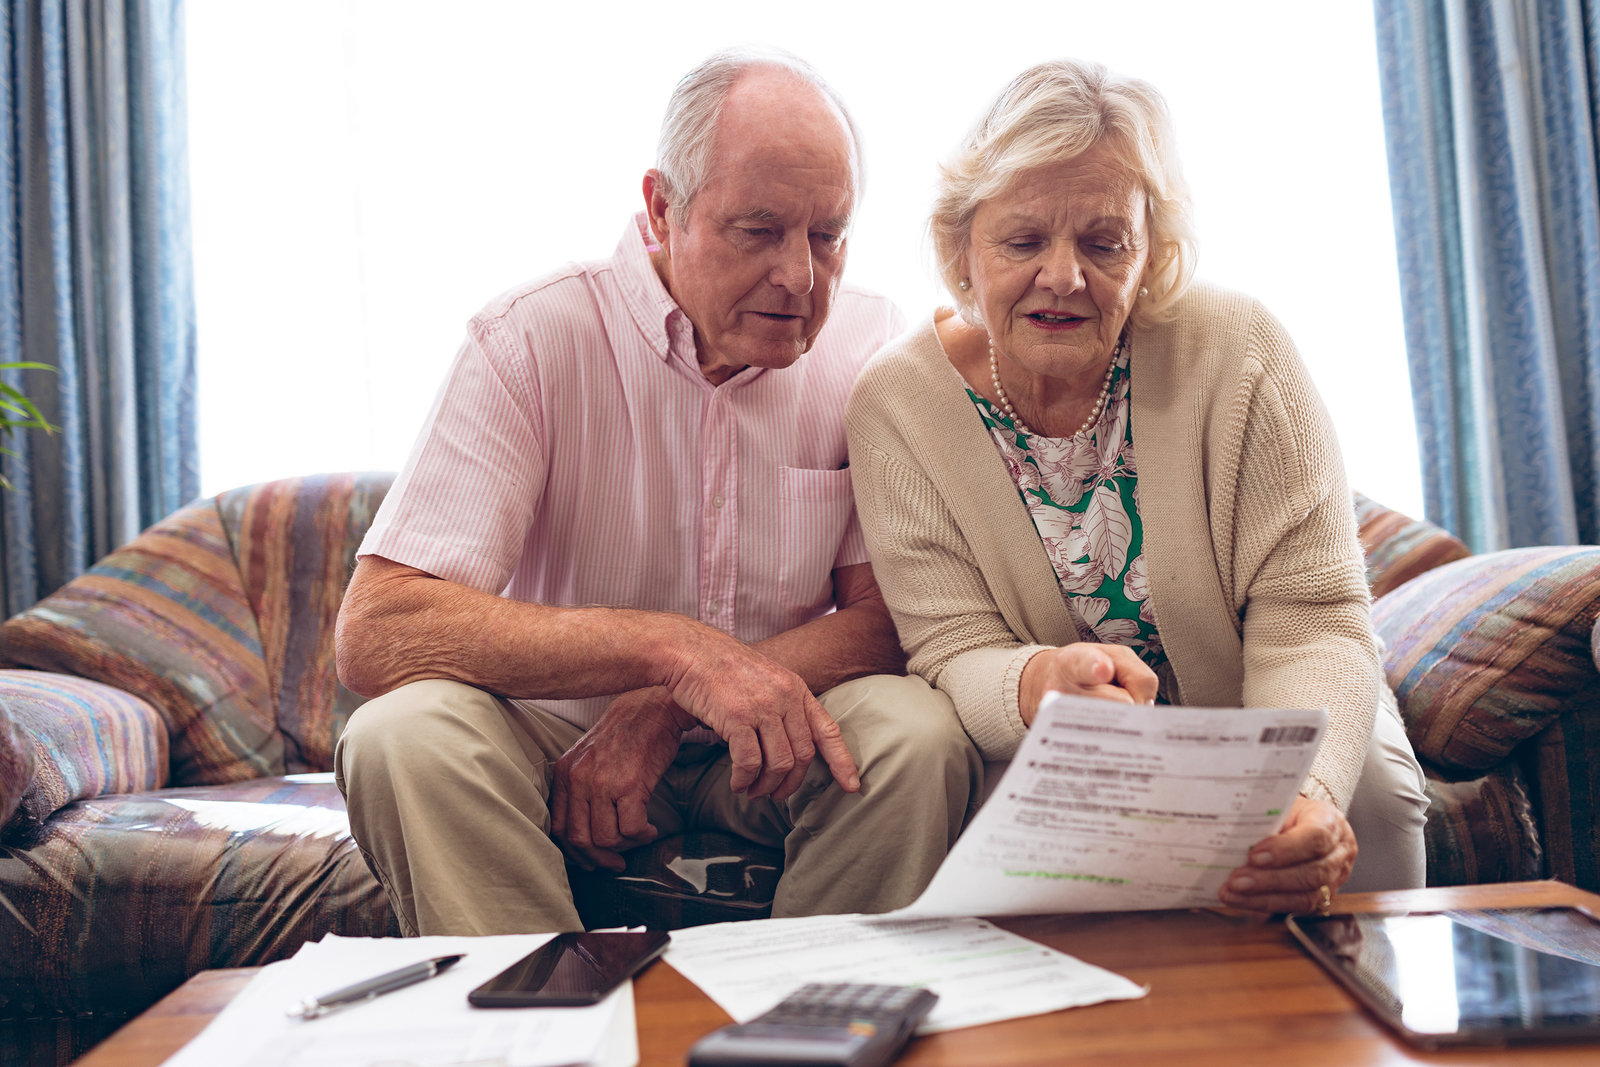 an elderly couple at home with paperwork looking into if Medicare covers home care